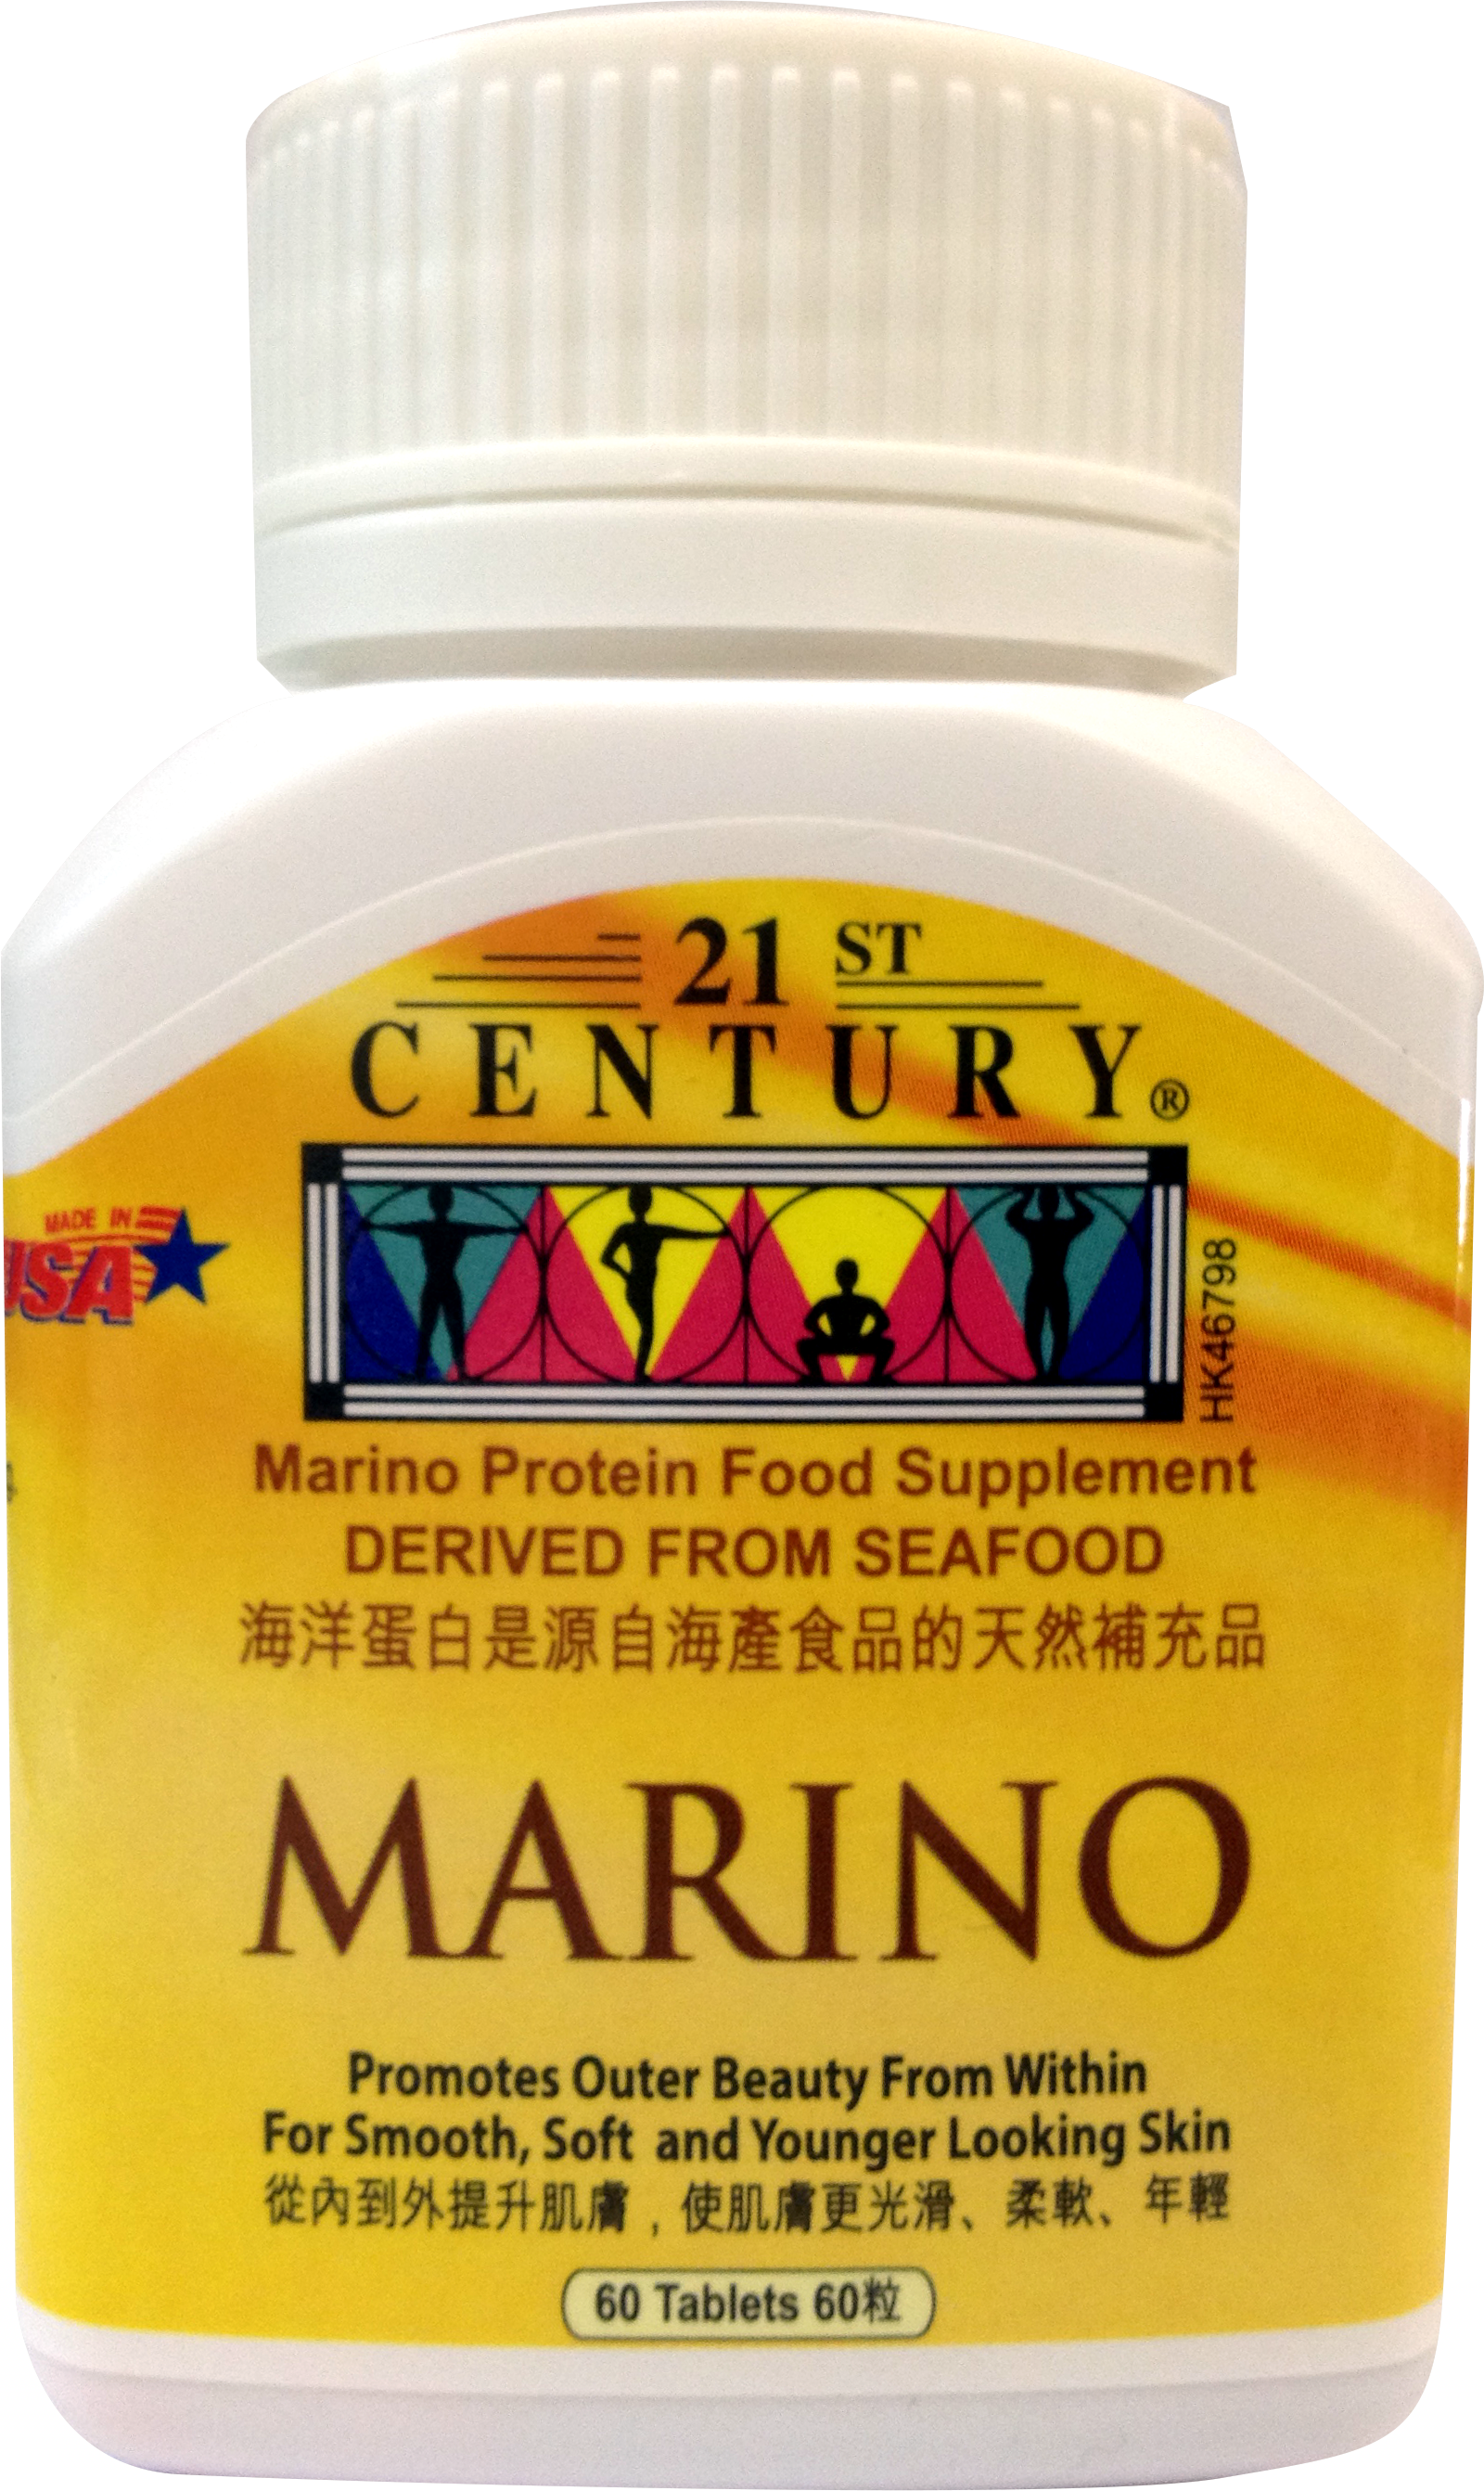 MARINO, marine protein, Skin Nutrition Tablets HK$95